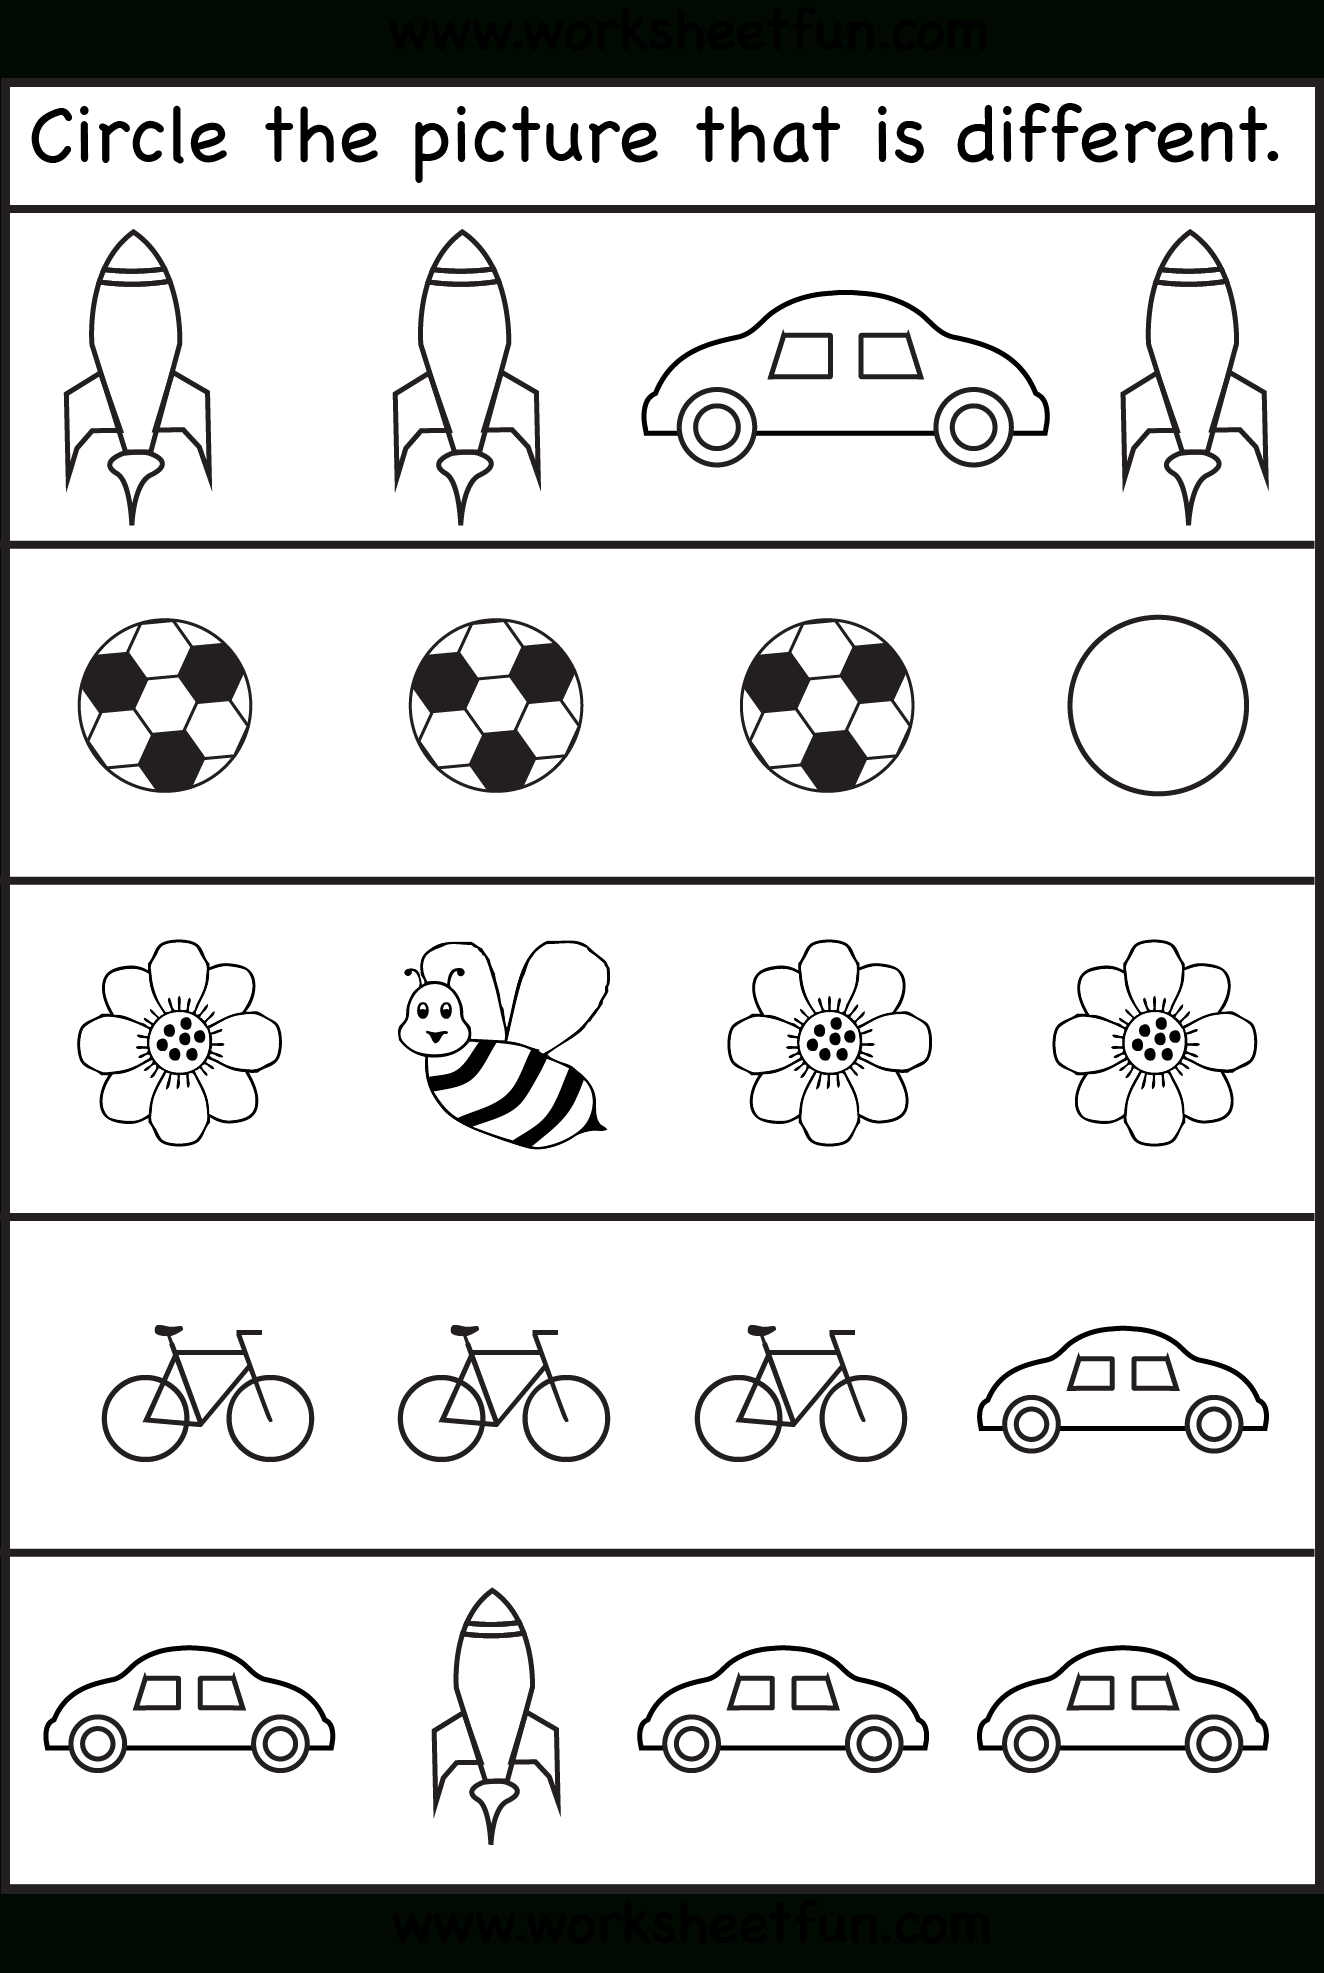 Same Or Different Worksheets For Toddler | Printables For Head Start | Printable Worksheets For Head Start